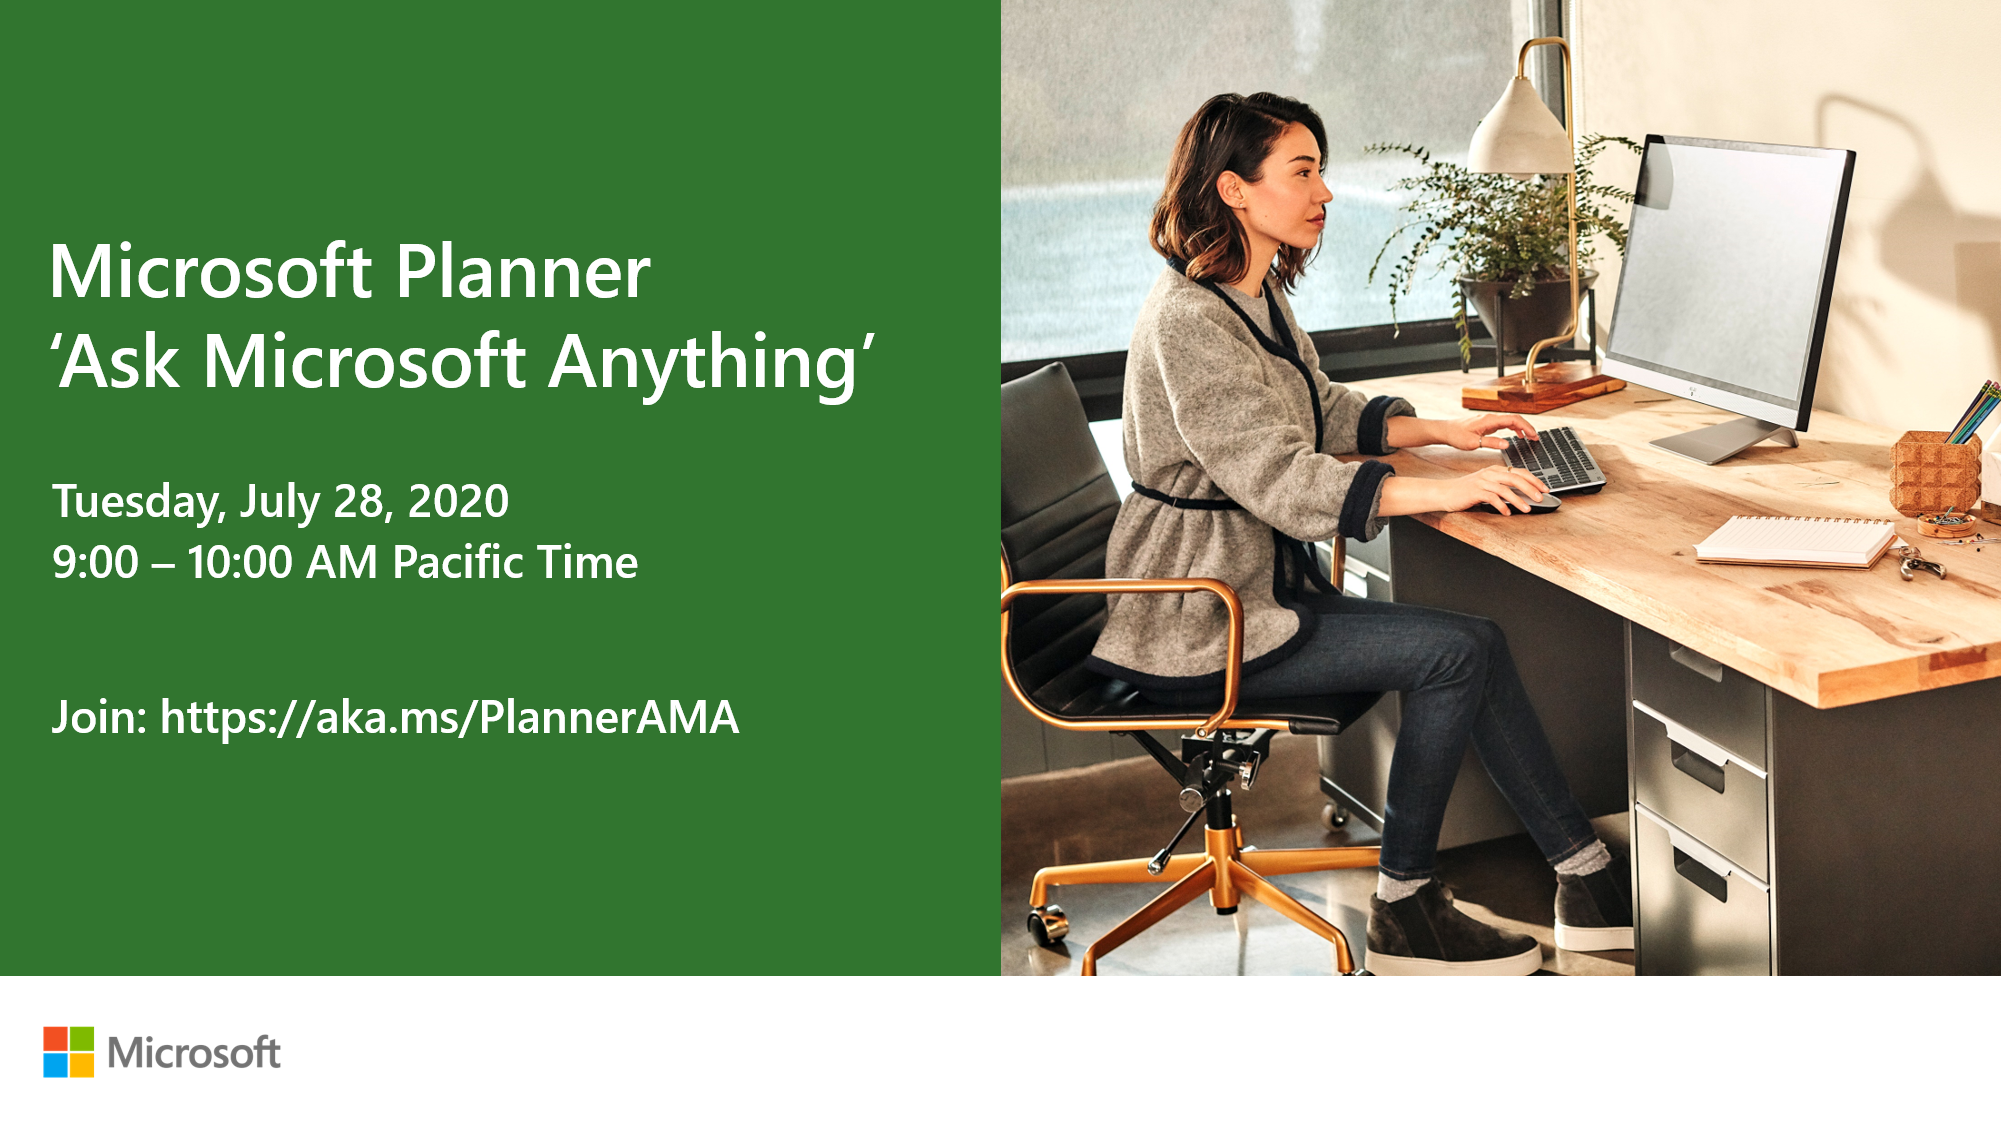 Microsoft Planner 'Ask Microsoft Anything' call to action